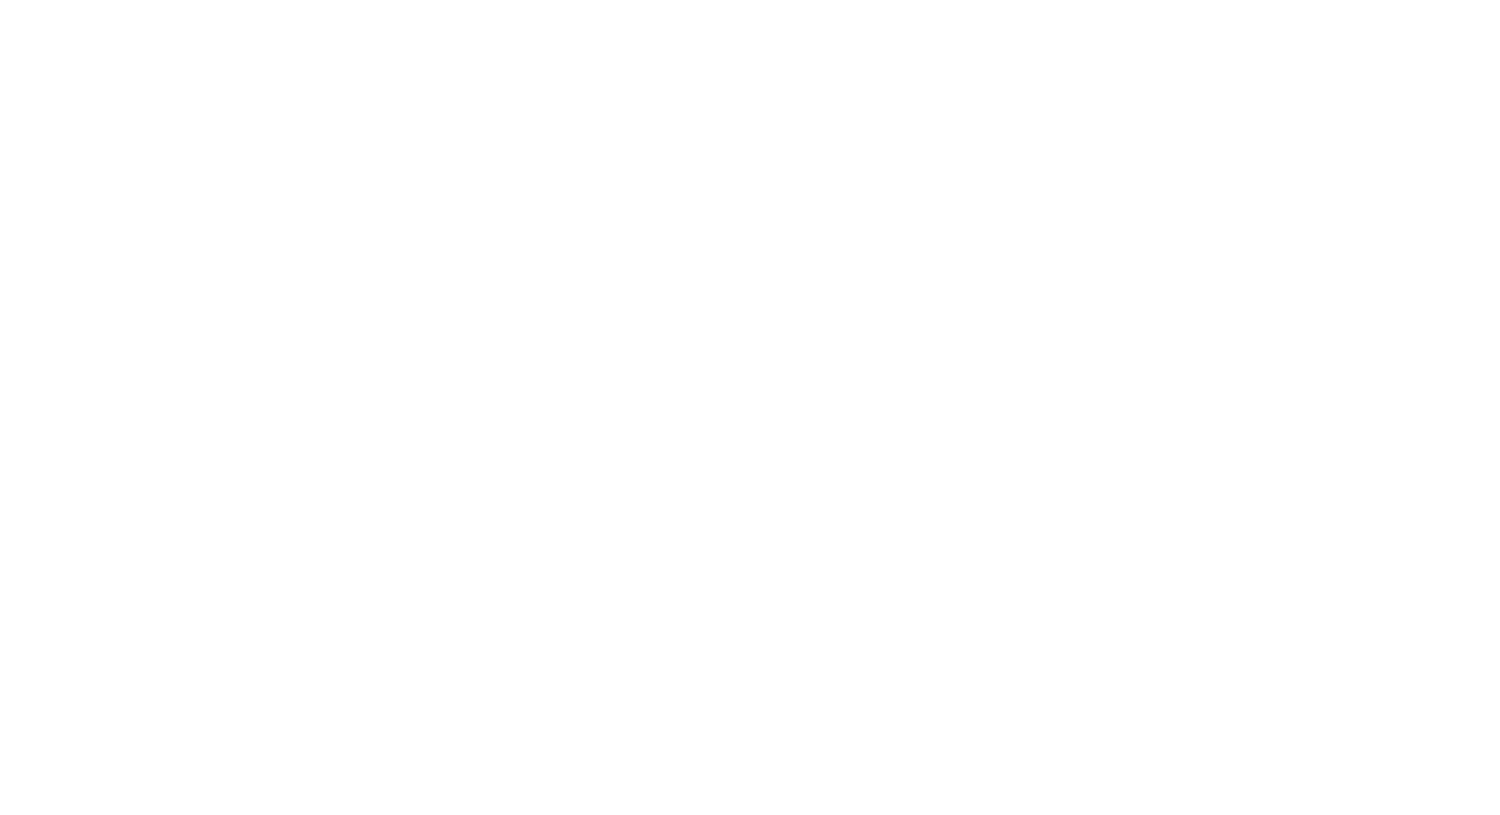 Cody Coyotee Howard